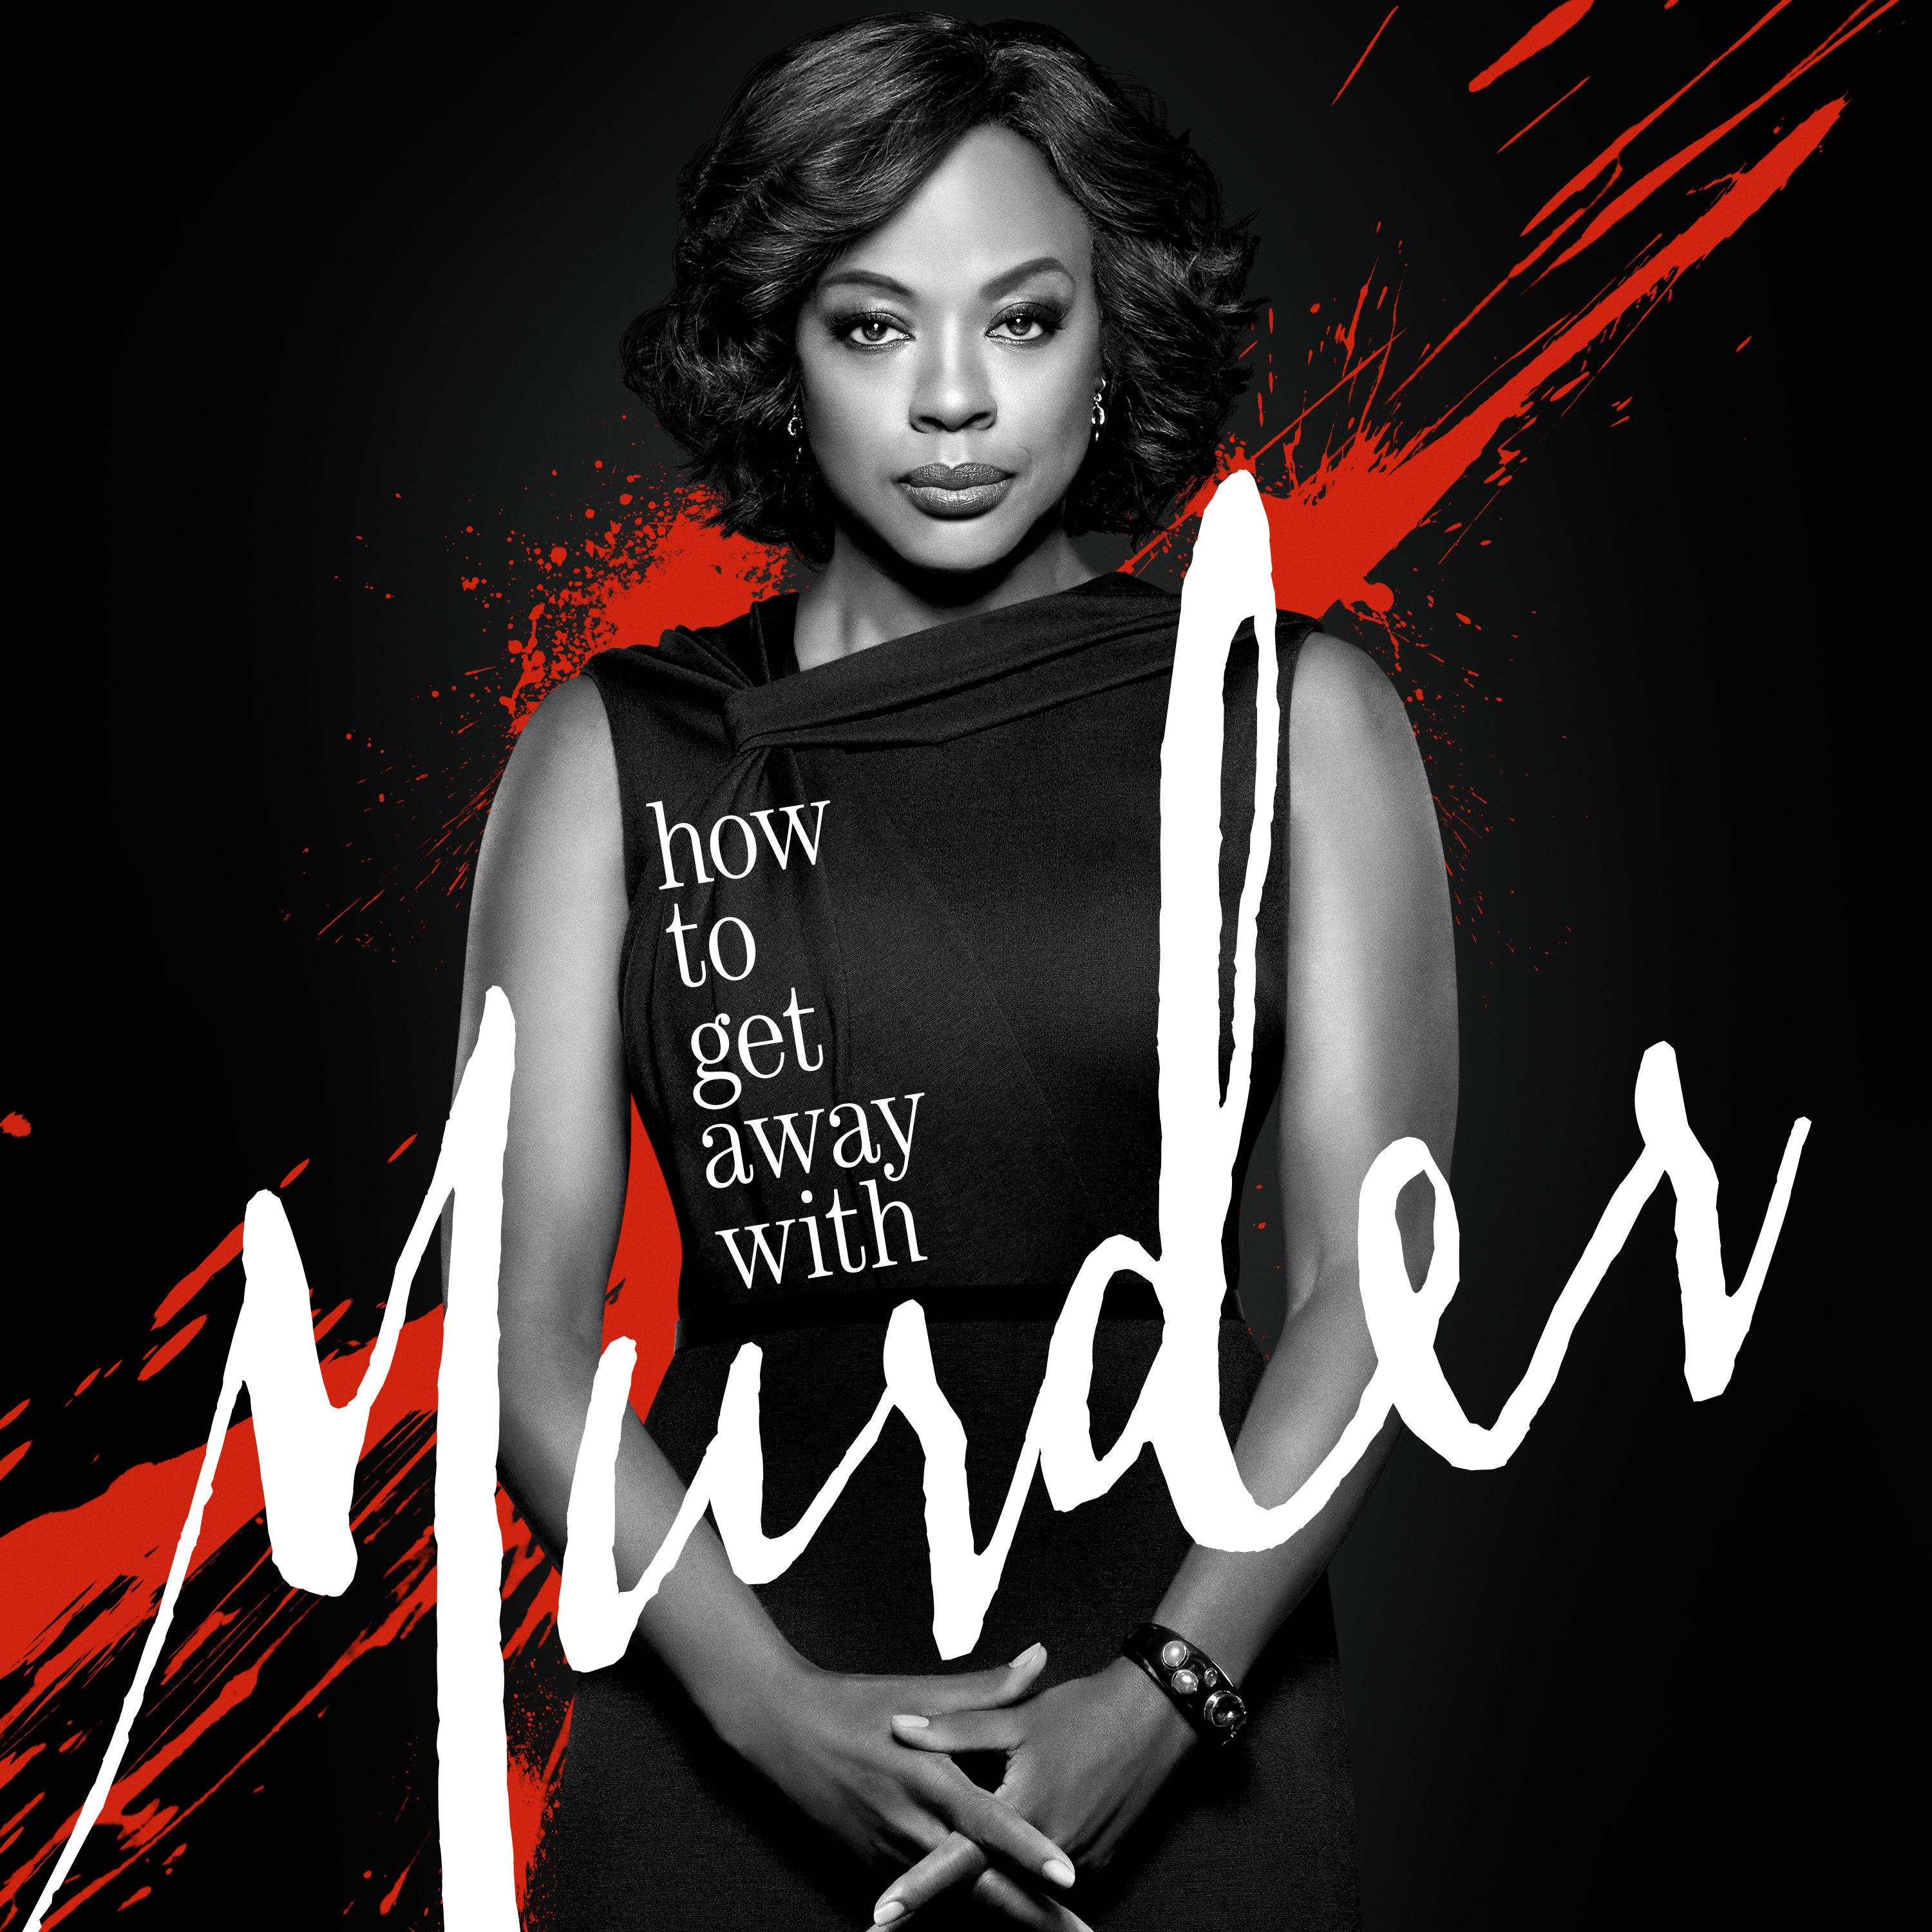 How to Get Away with Murder S02 icon by tomyan112 on ...